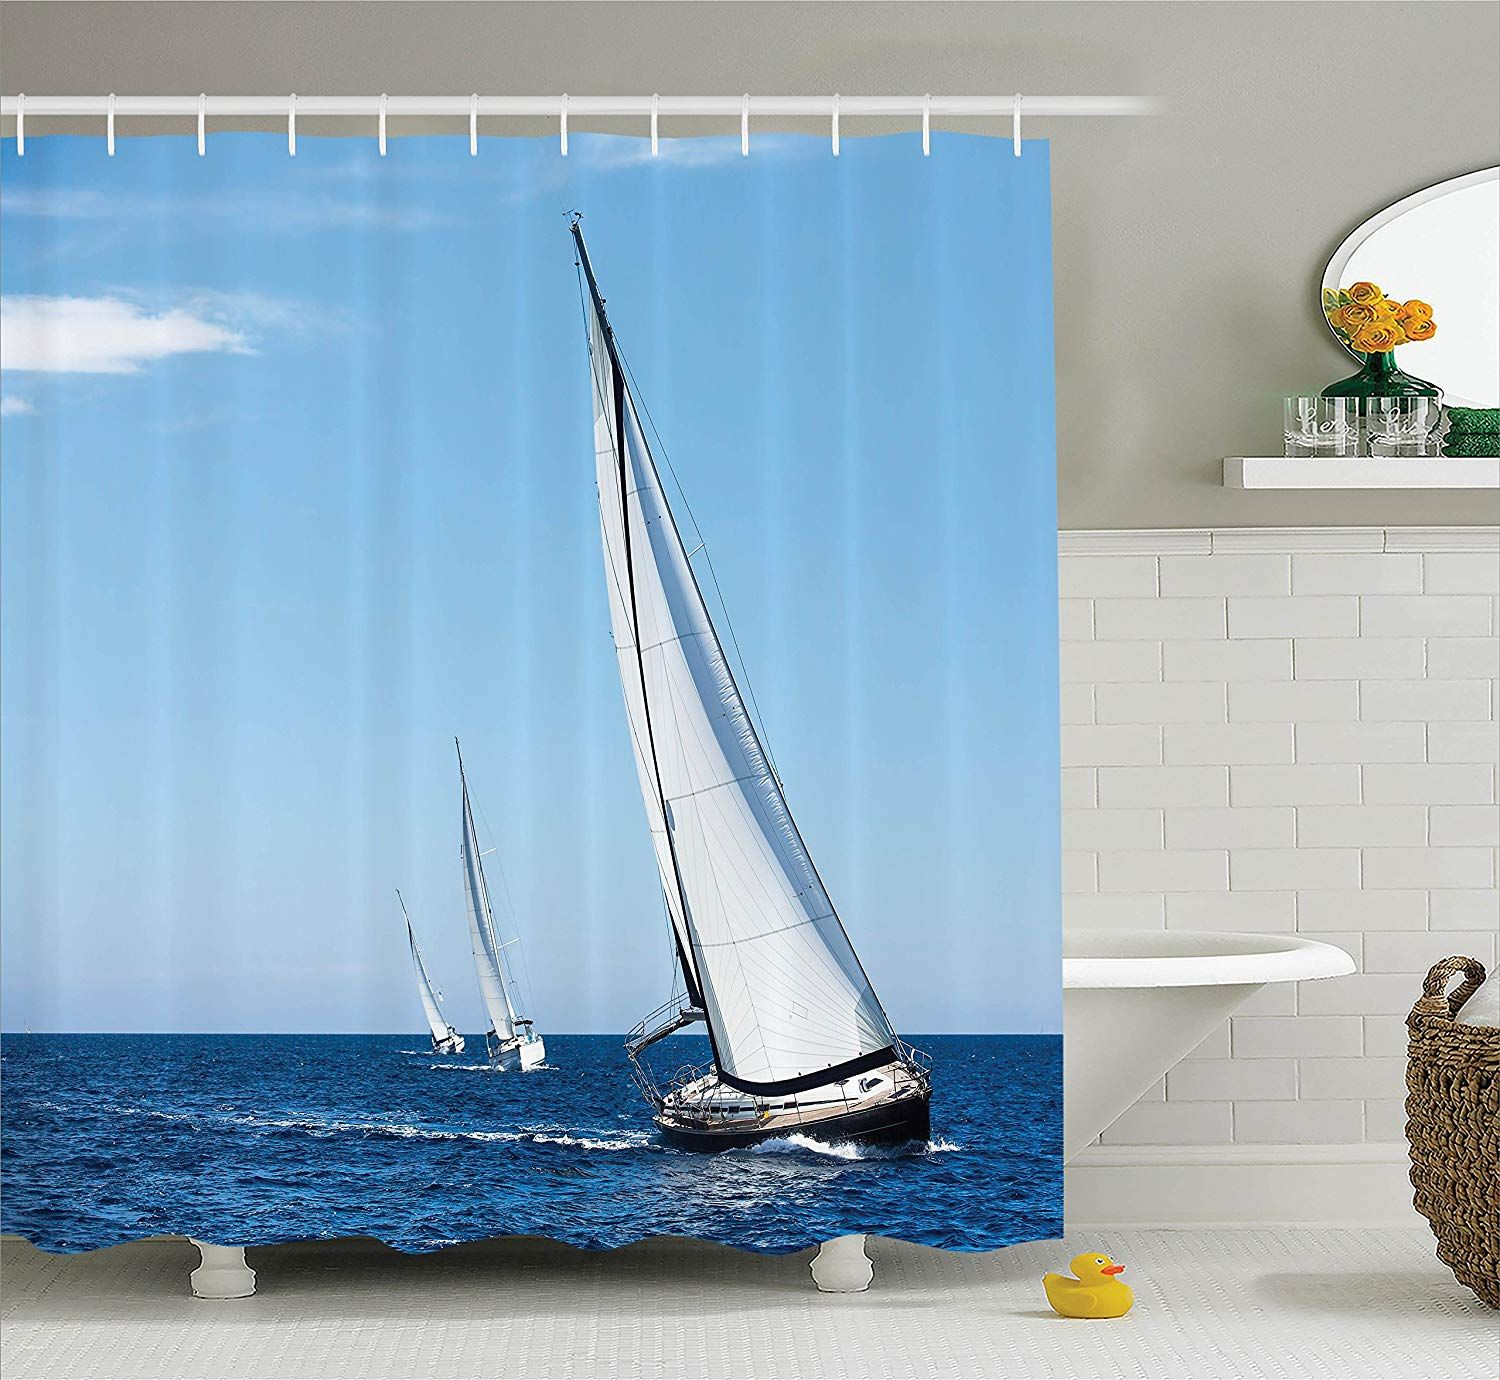 Ambesonne Sailboat Nautical Decor Collection Luxury Yachts Sailing In The Wind Through The Waves At The Aegean Sea Picture Polyester Fabric Bathroom #aegeansea